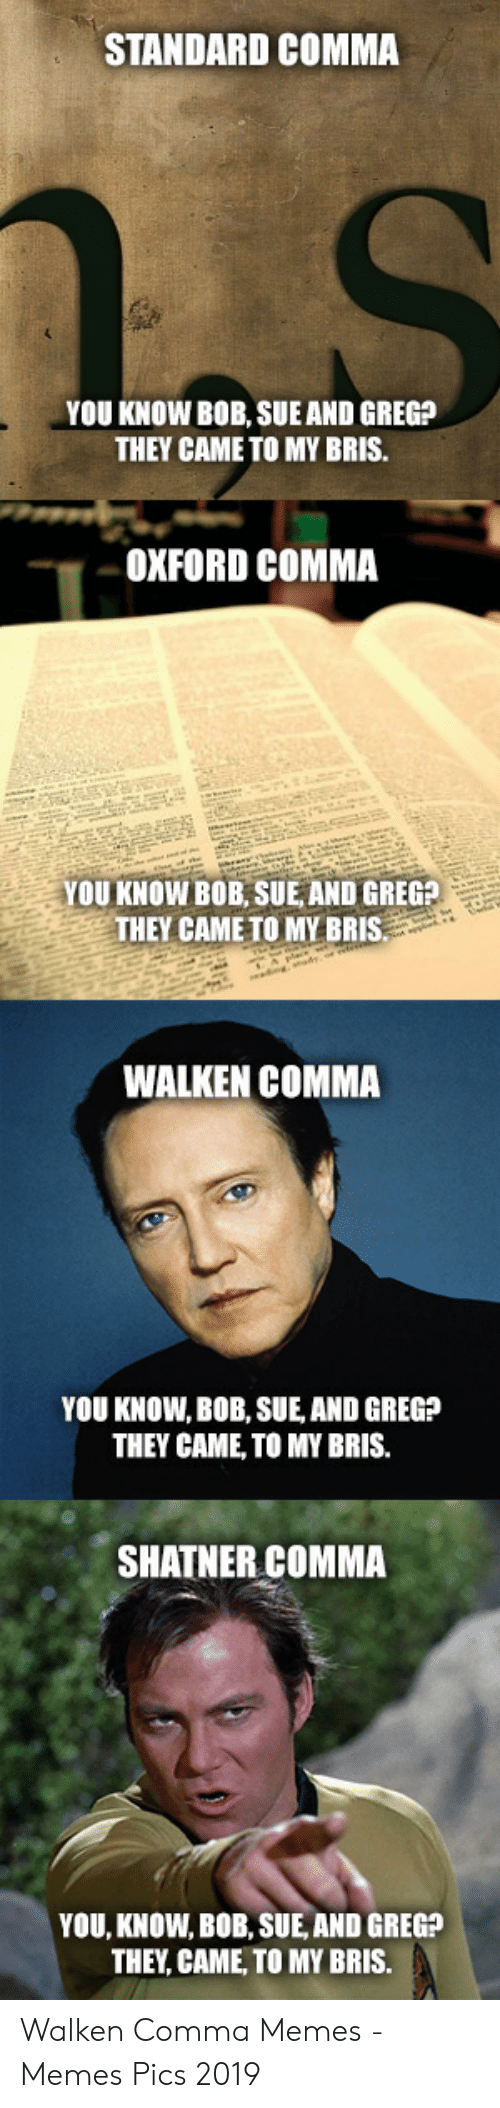 Walken Comma Shatner Comma : walken, comma, shatner, Oxford, Comma, Shatner